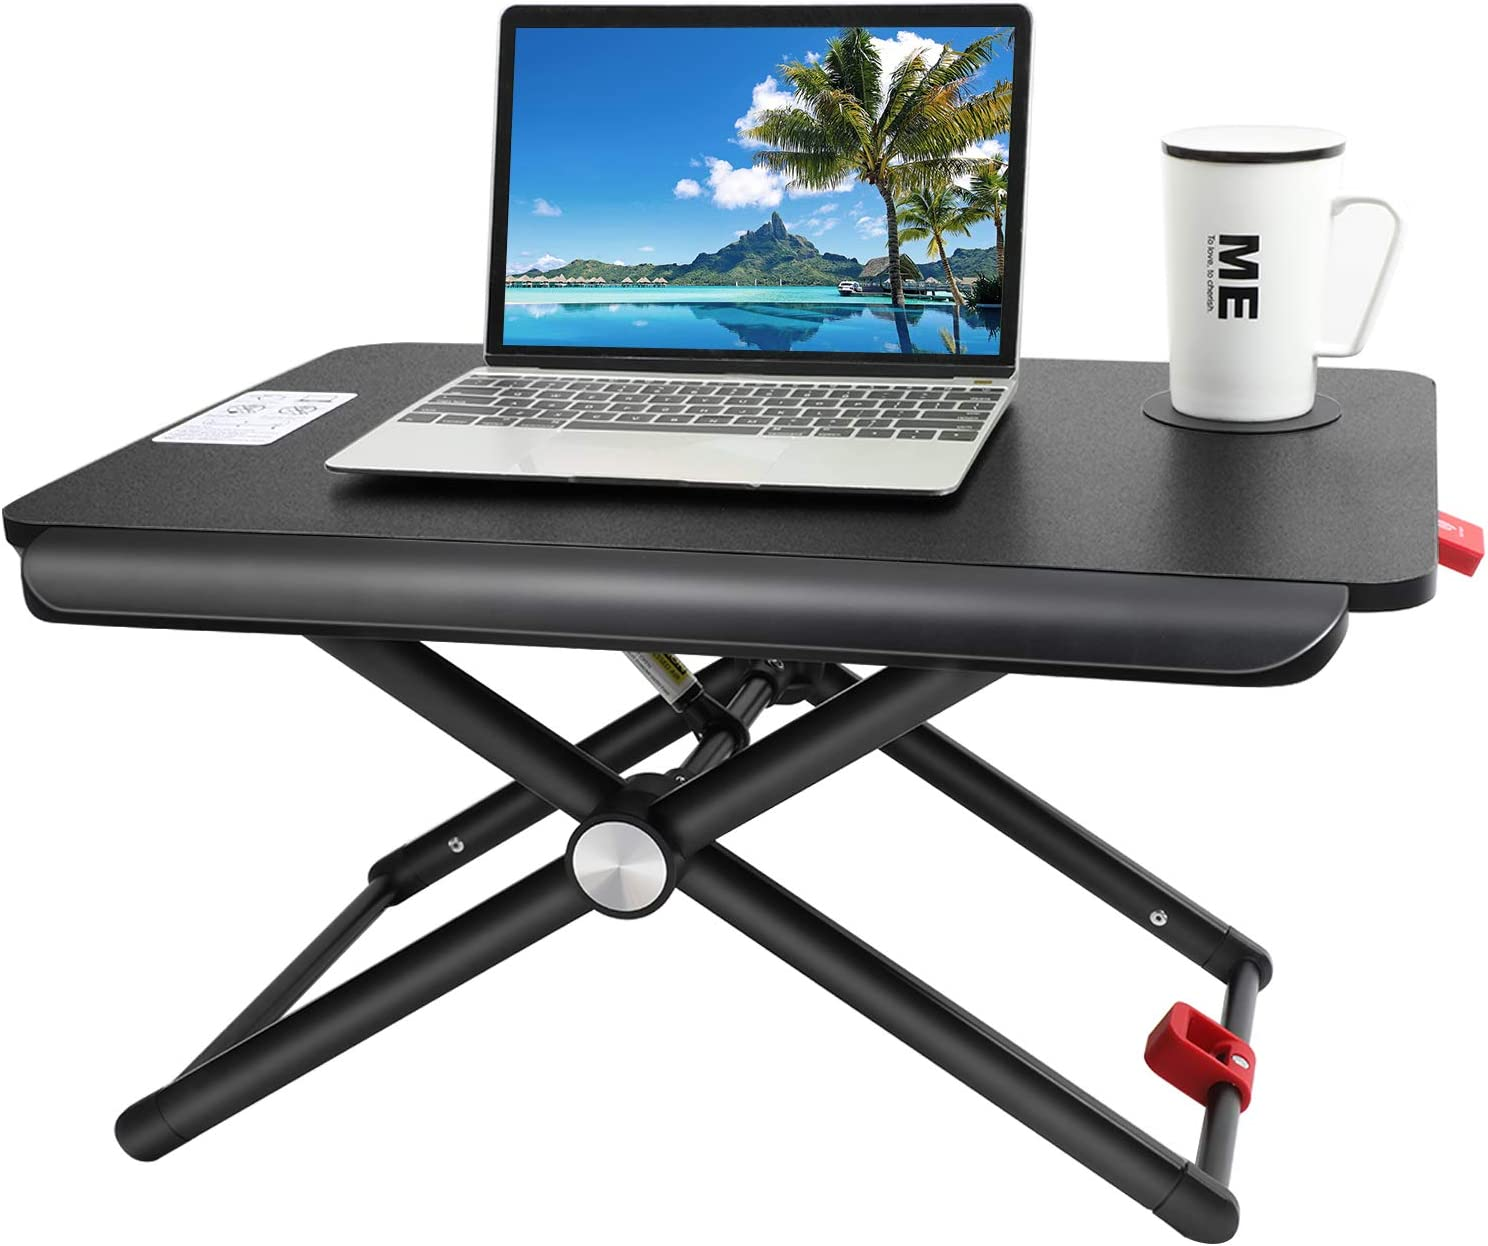 Standing Desk Converter | Height Adjustable Sit Stand Desk with Cup Pad, 5 Height Adjustments, Tabletop Stand Up Desk Workstation for Laptops or Notebooks Up to 17 Inches